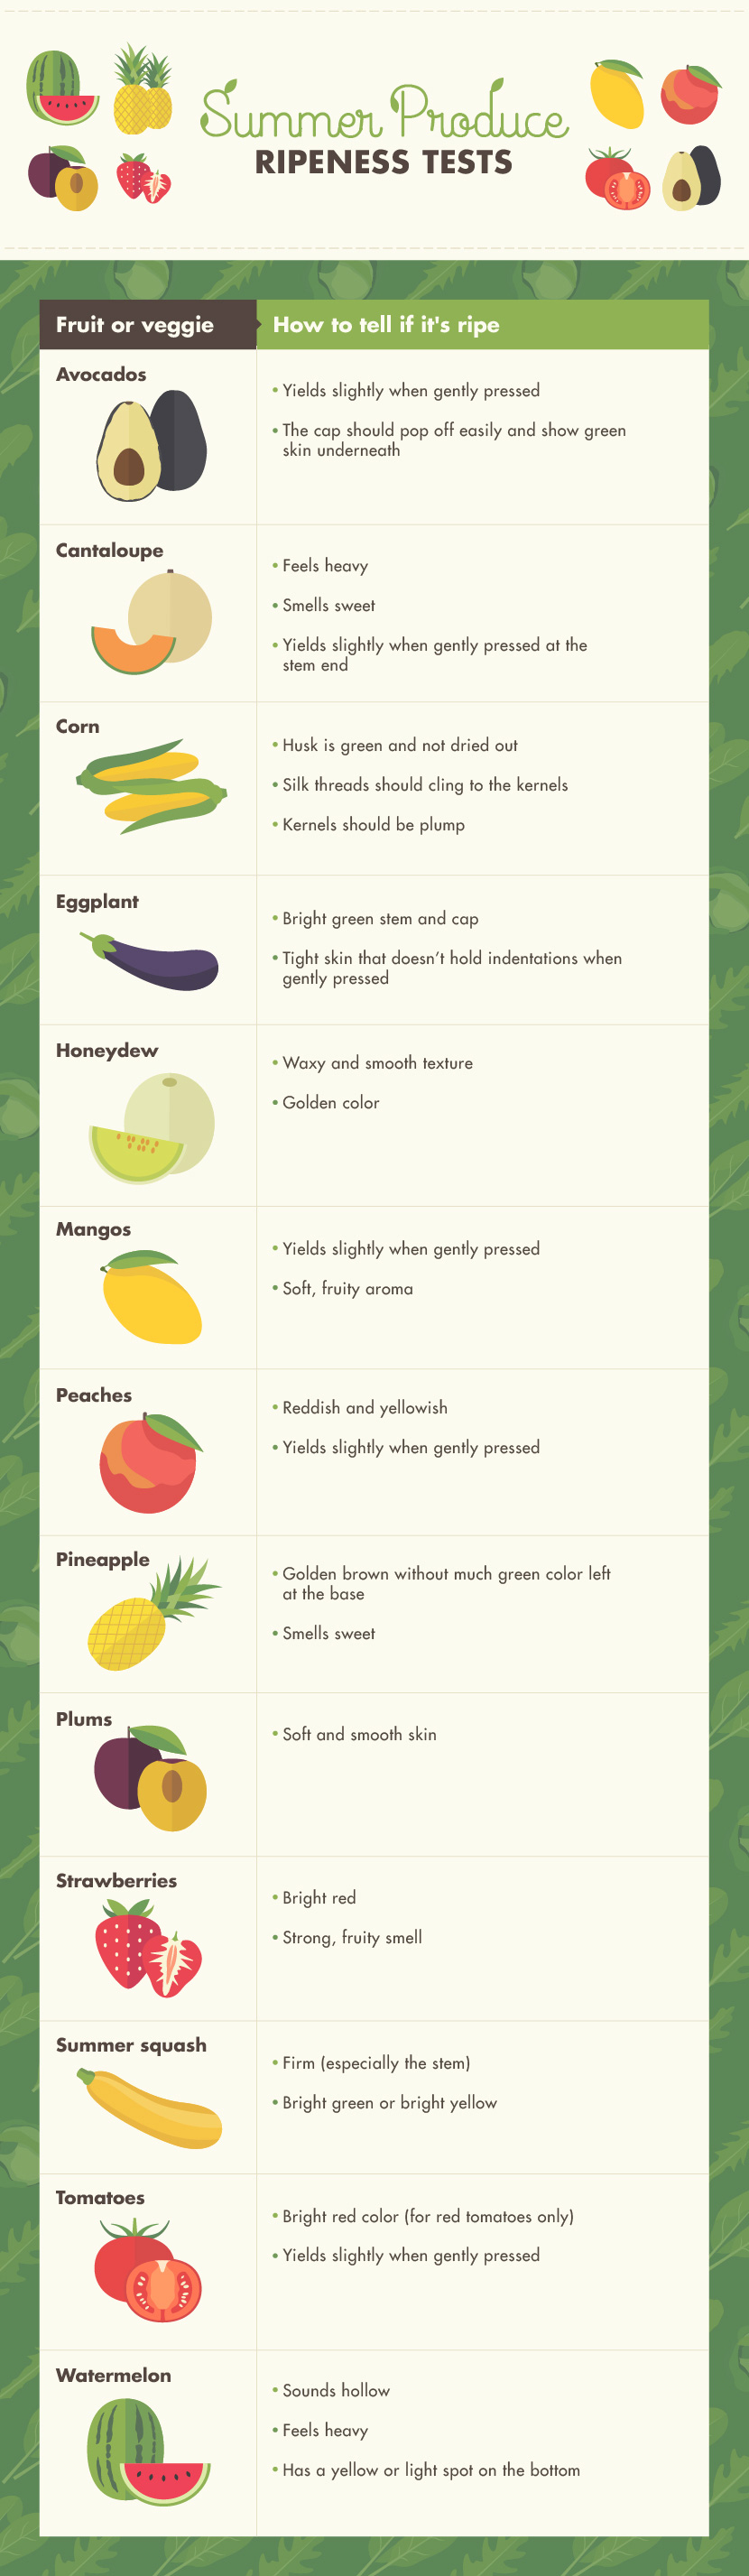 Summer Produce Ripeness Test